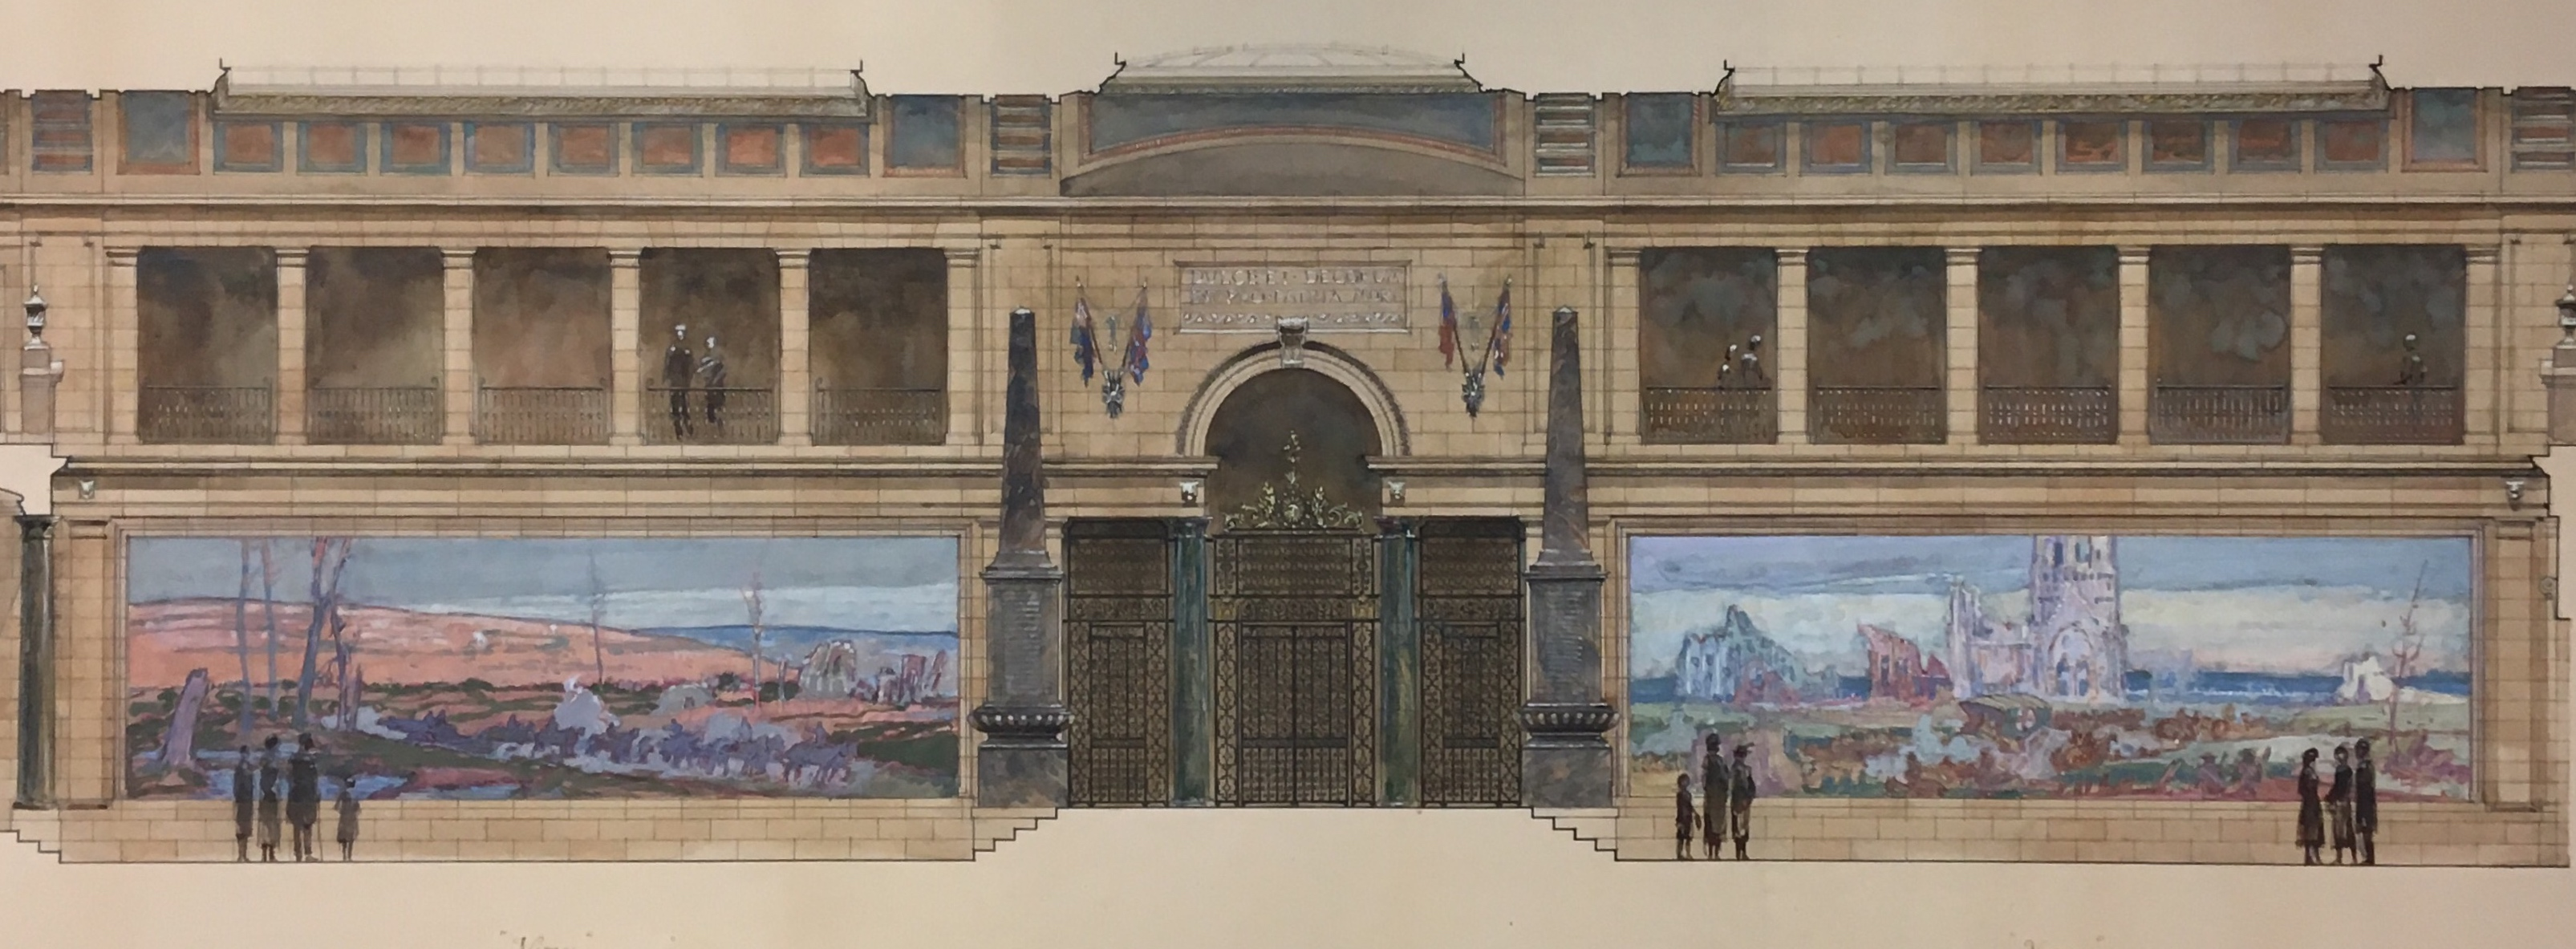 Design for Regina War Memorial Museum (unbuilt) by Percy E. Nobbs is included in Part II of the exhibition